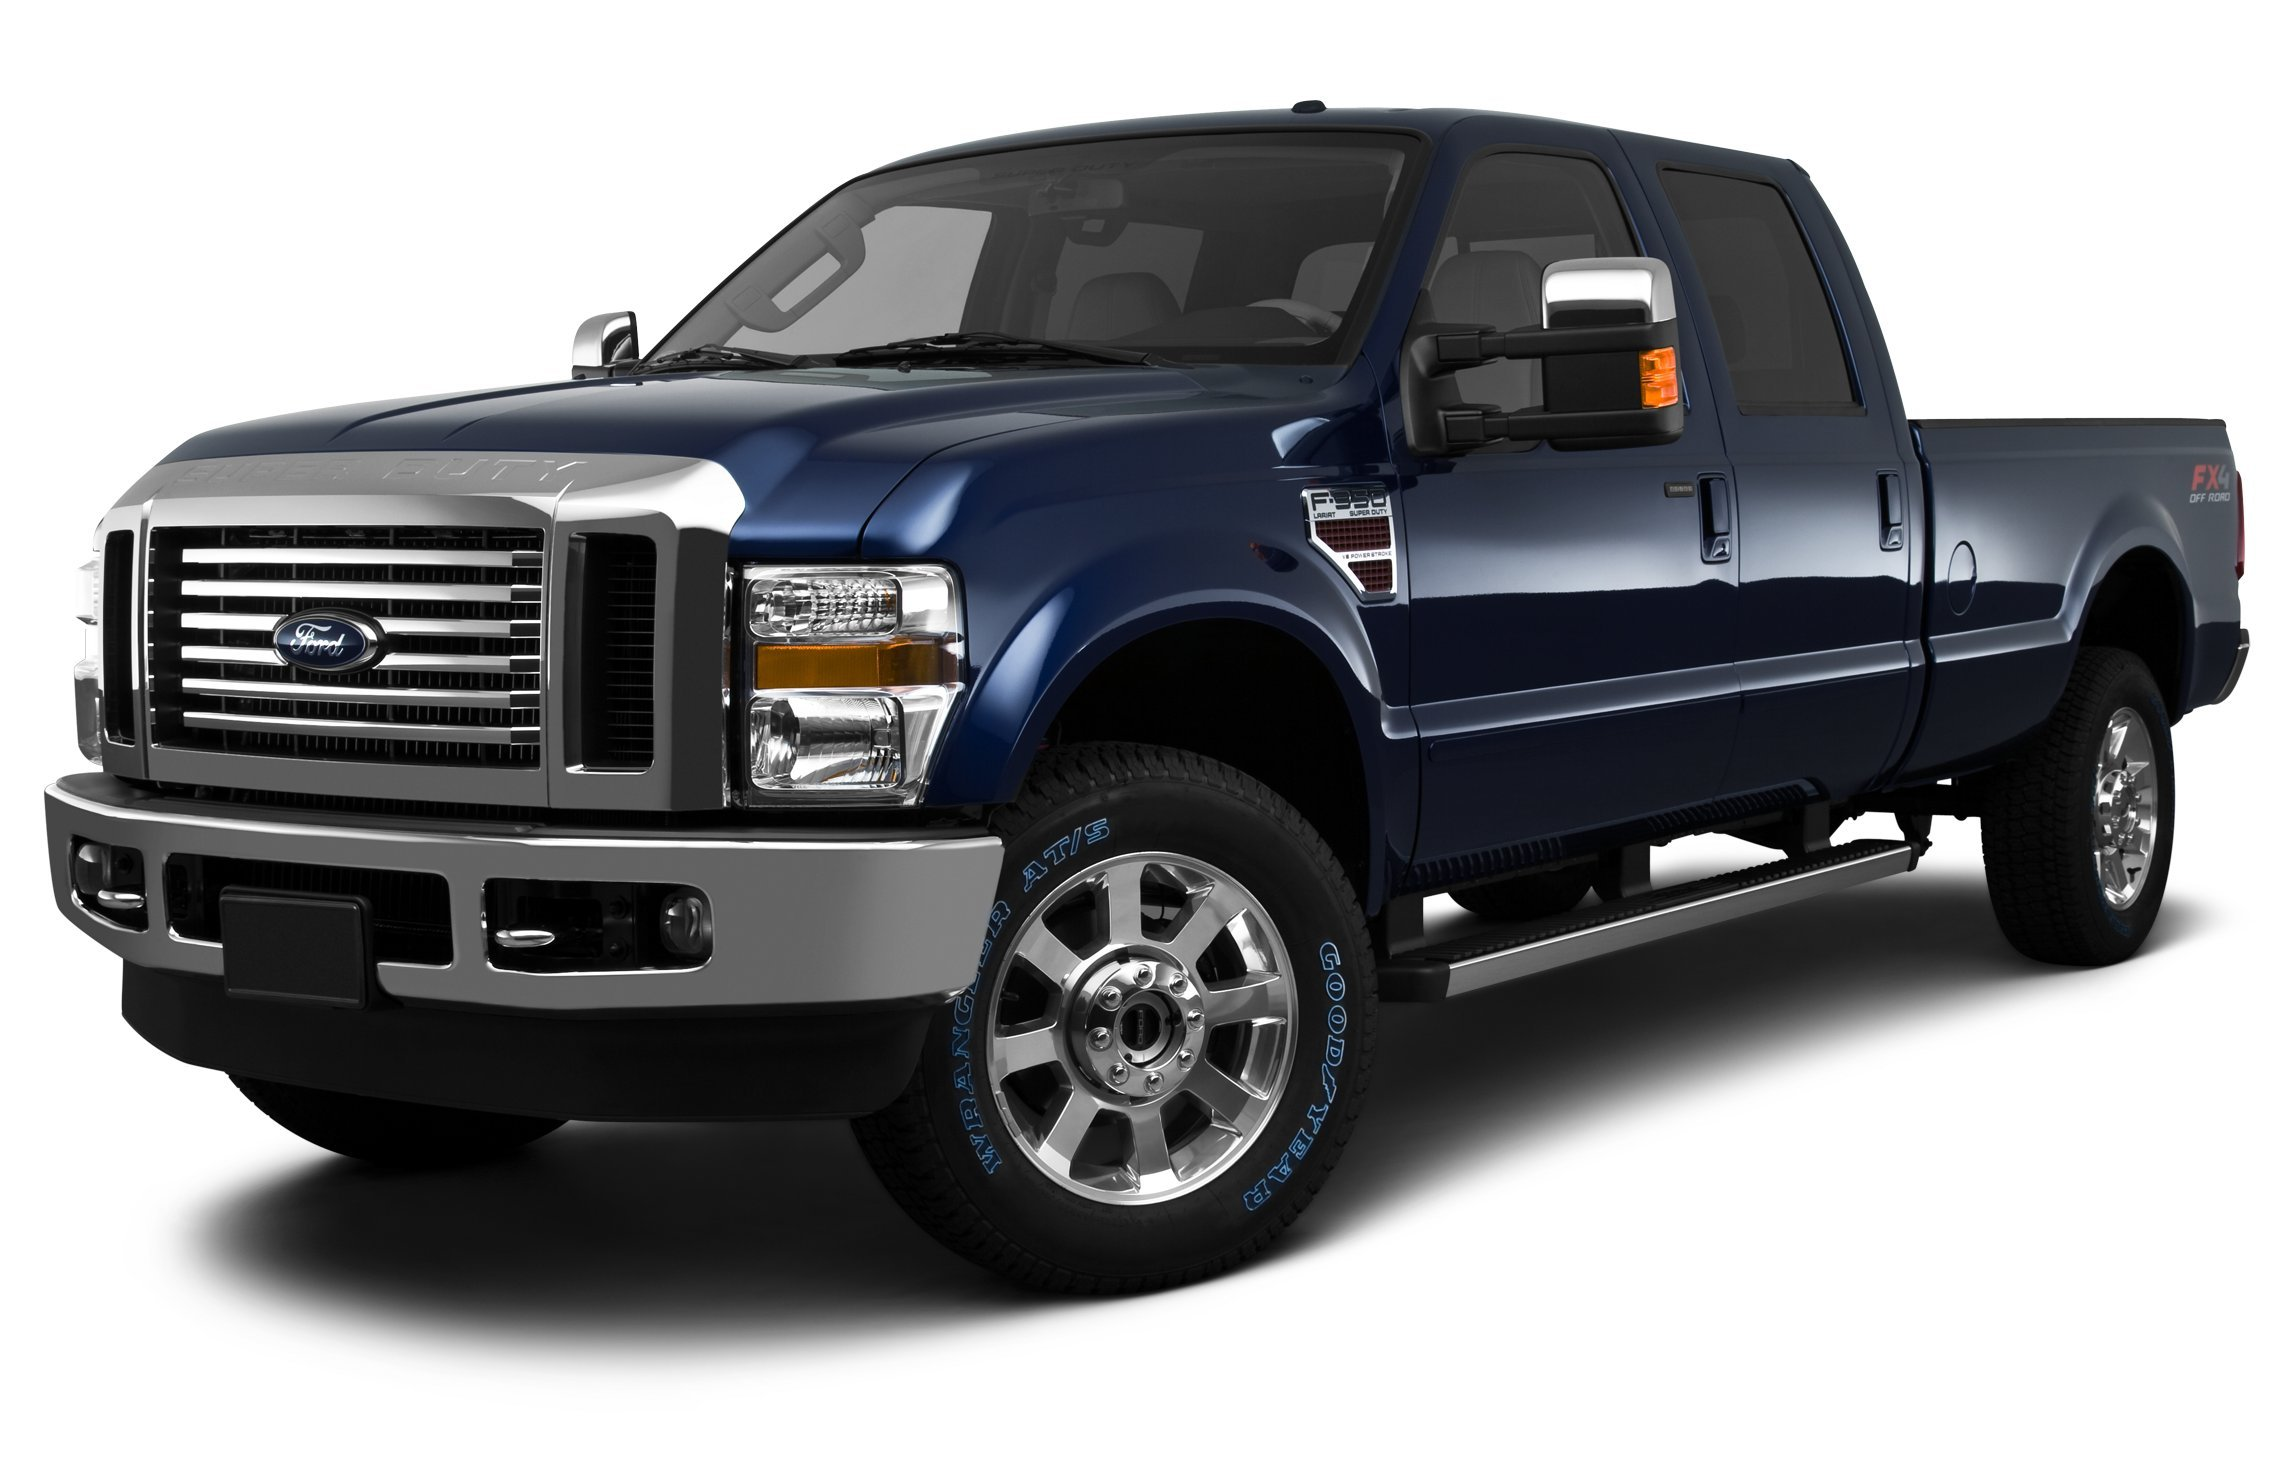 2010 Dodge Ram 2500 Reviews Images And Specs Vehicles 1983 Ford F 350 Wiring Harness Free Download Super Duty Lariat 2 Wheel Drive Crew Cab 156